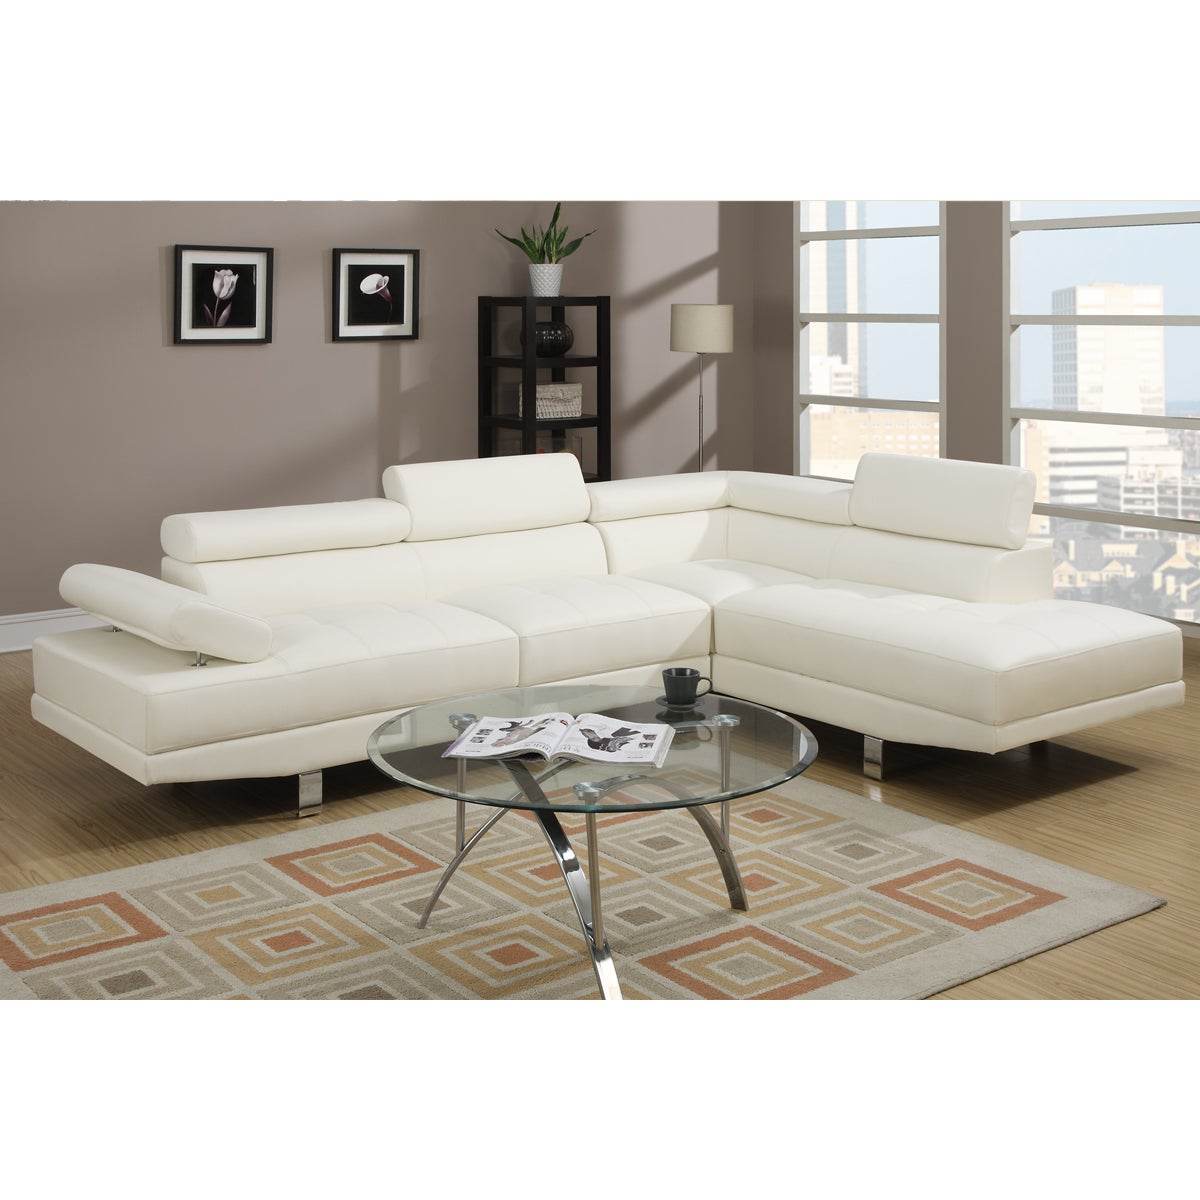 Poundex Pomorie White Faux Leather Sectional Sofa Set at Sears.com